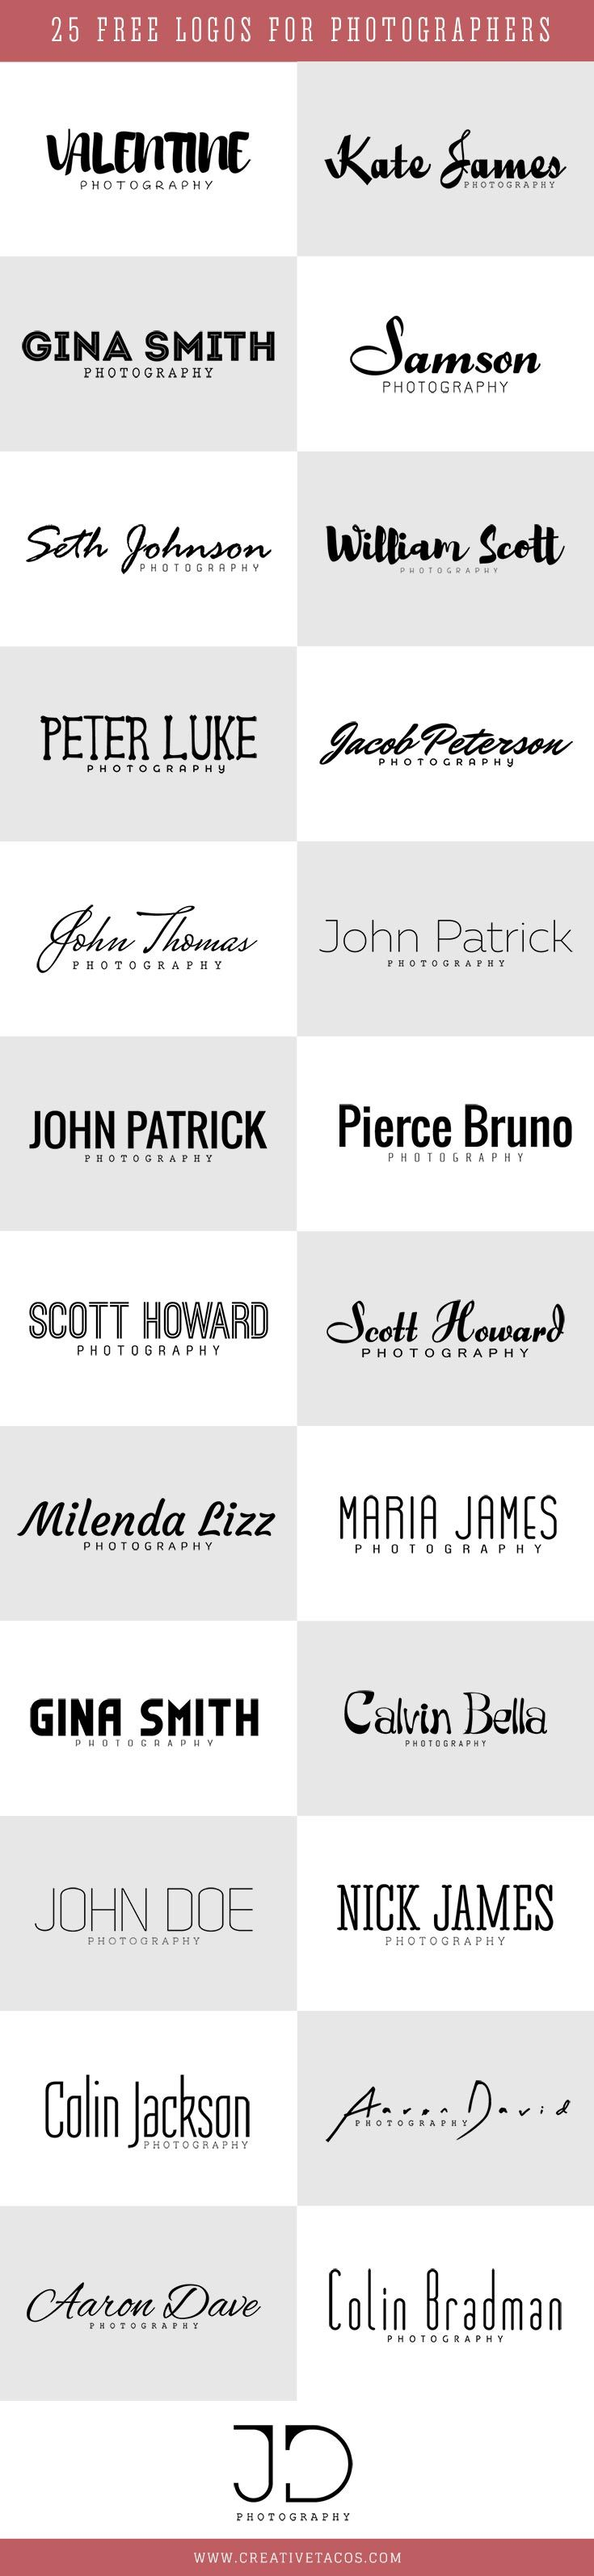 Showcase your #photography business using these free 25 #photography logo in your business and brand. via @creativetacos